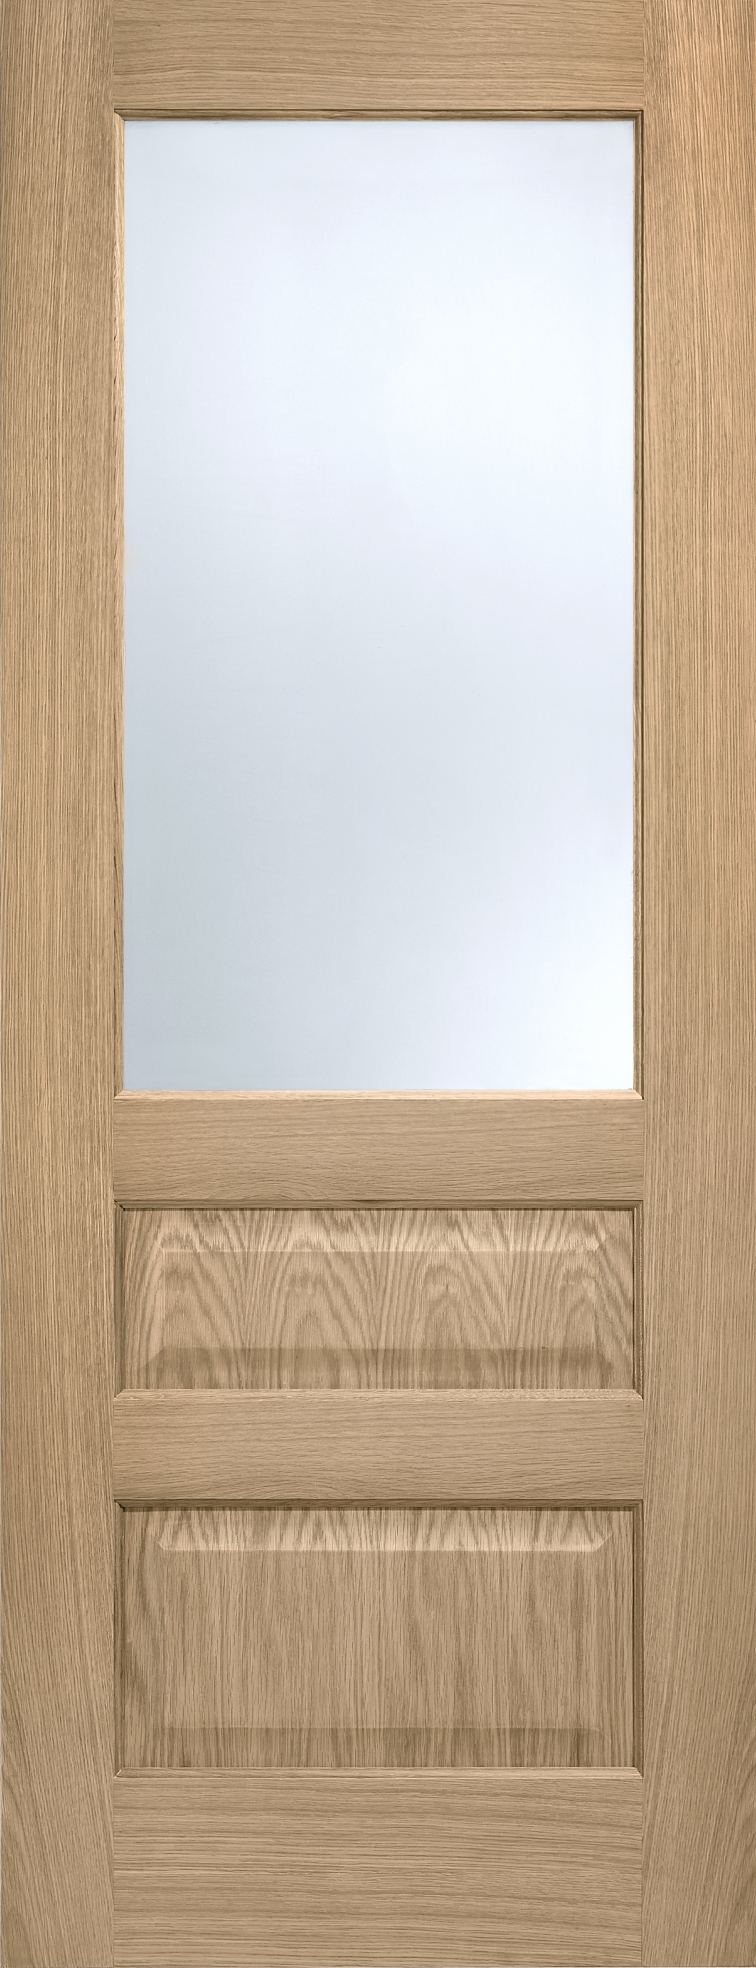 Oak Contemporary 1L/2P - Prefinished Frosted